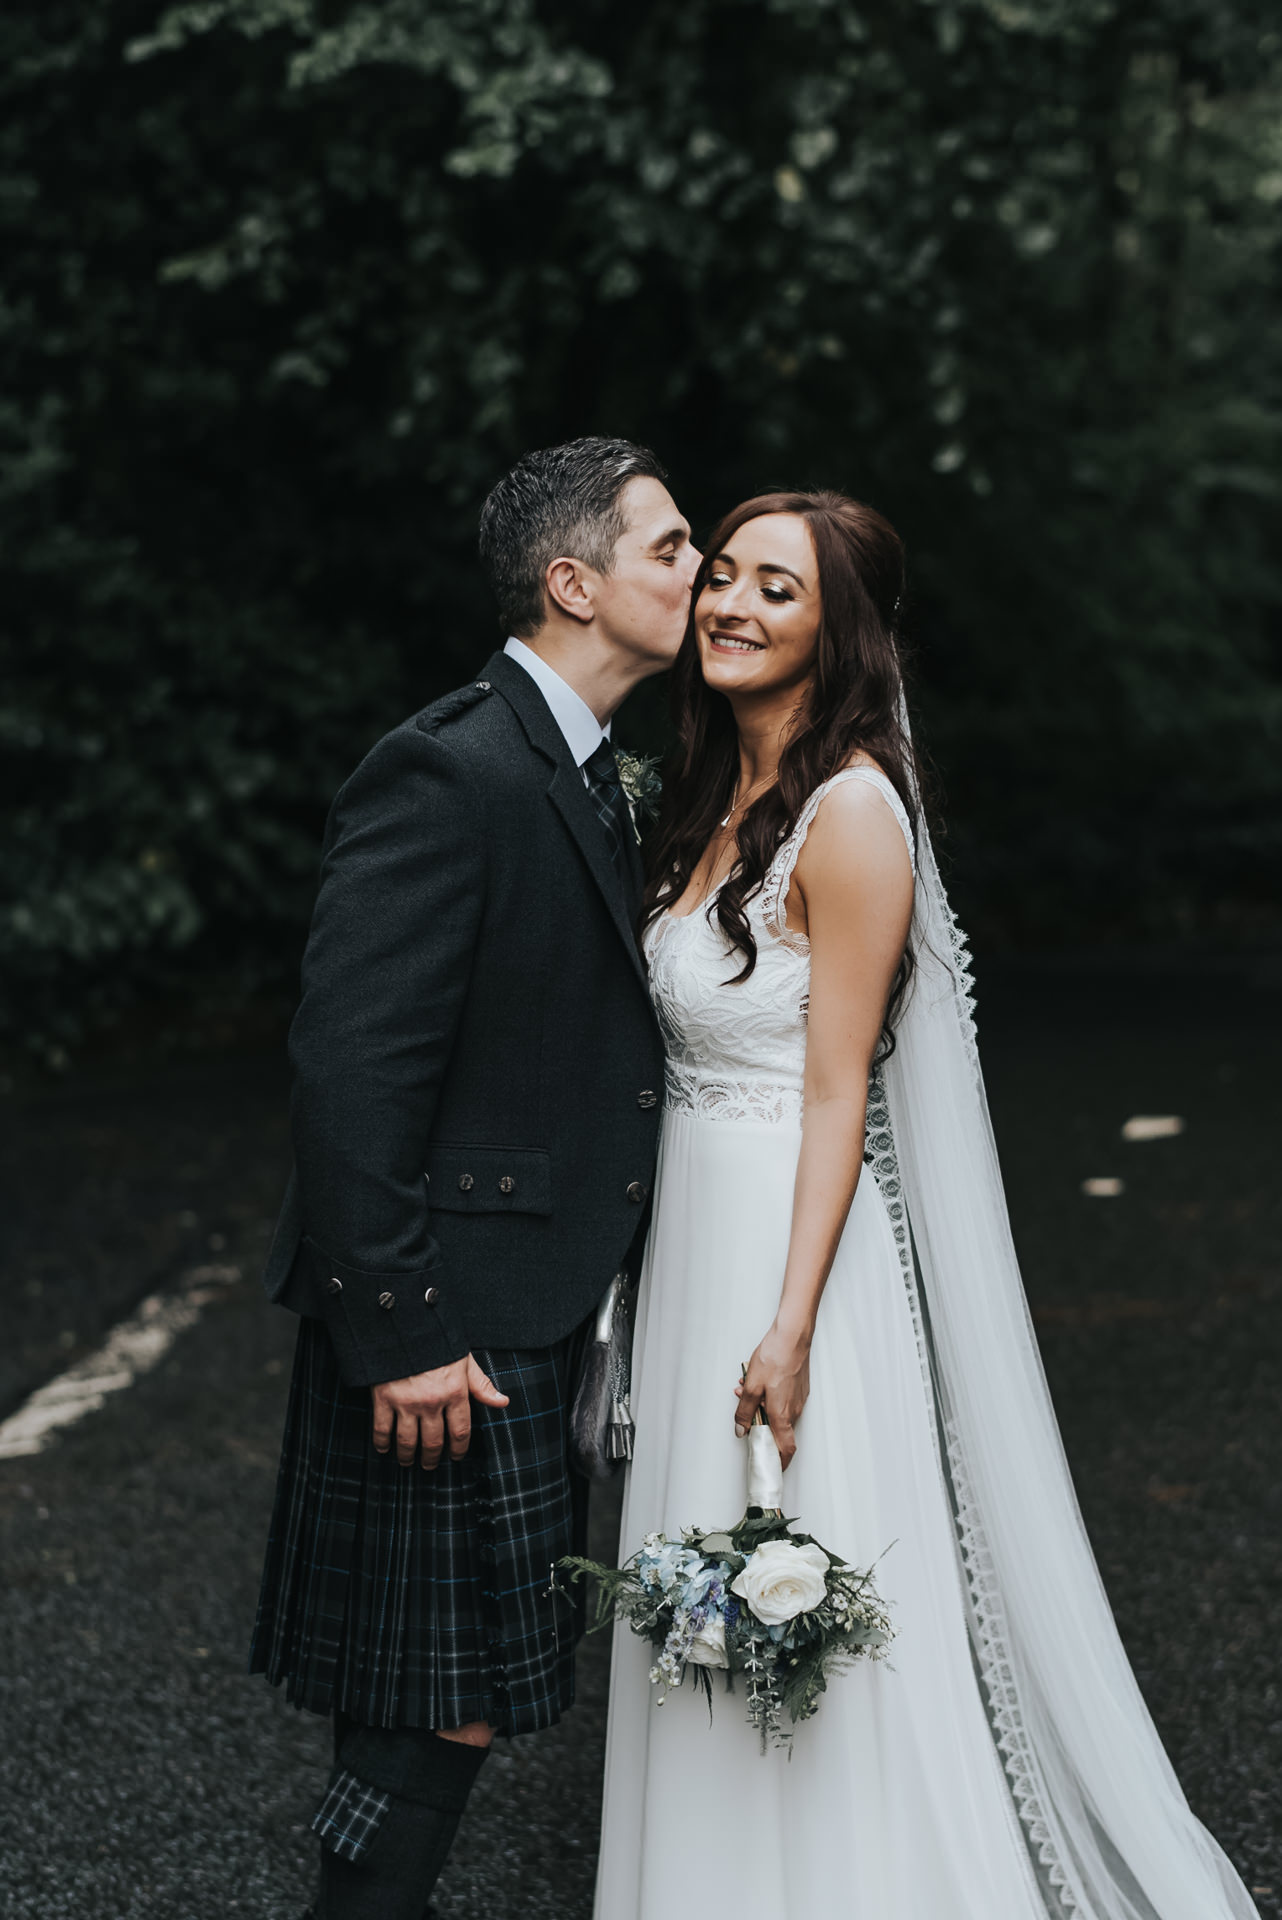 Lodge on Loch Lomond wedding photos, wedding Lodge on Loch Lomond, wedding photographer Edinburgh, wedding photographer Scotland, wedding photographer Glasgow, Karol Makula Photography, wedding photography Scotland, Scotland wedding photographer